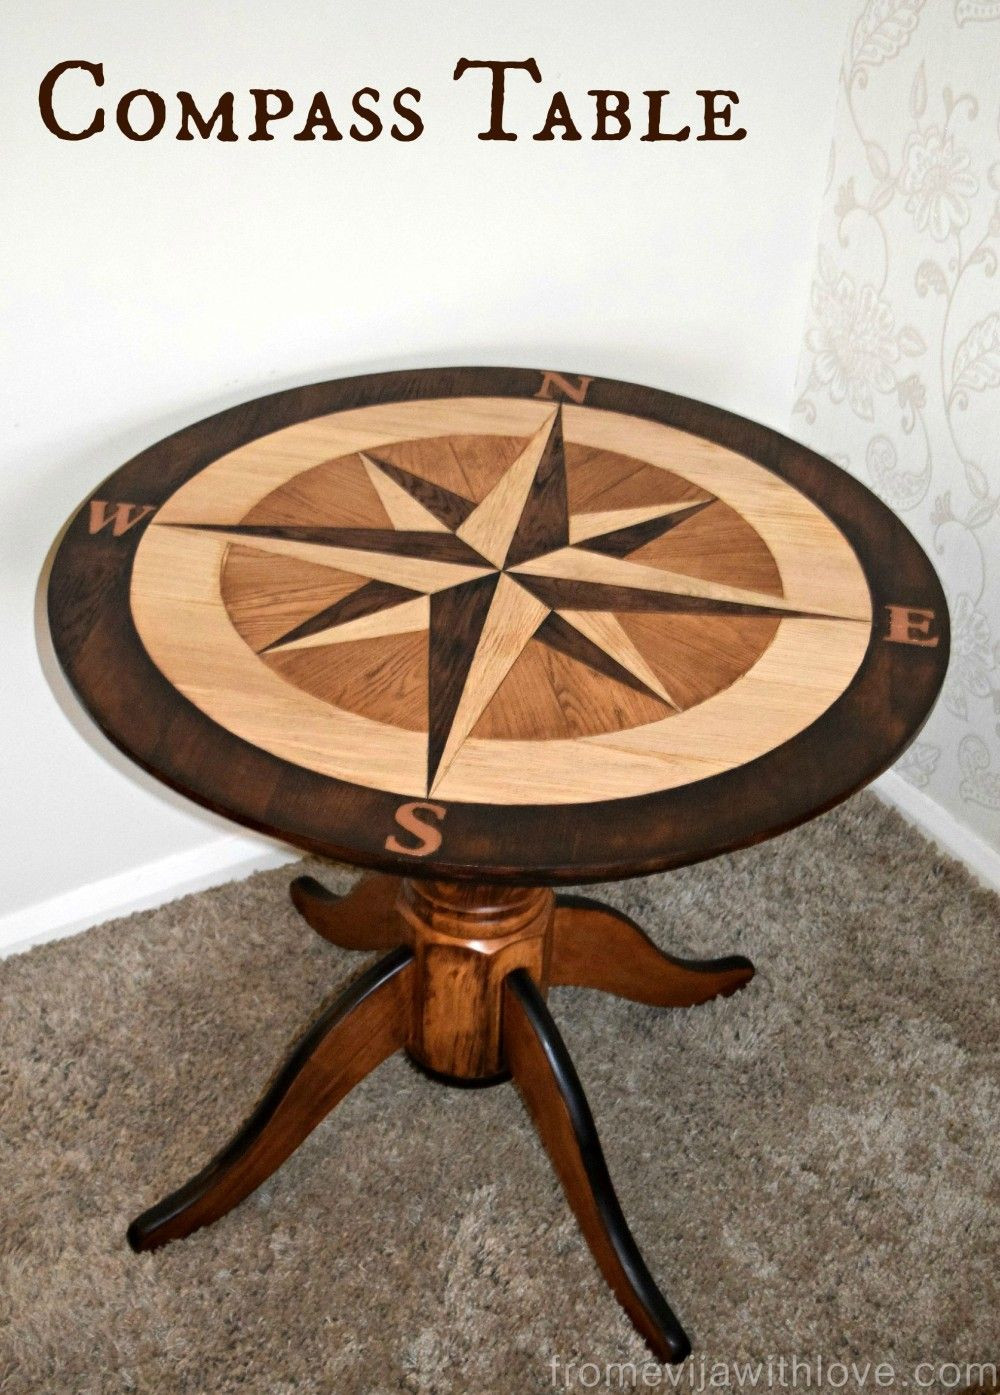 total hardwood flooring pickering of diy compass table fffc september contest geometric design intended for diy wood and stain compass rose table using floor planks cut out like a puzzle fabulous